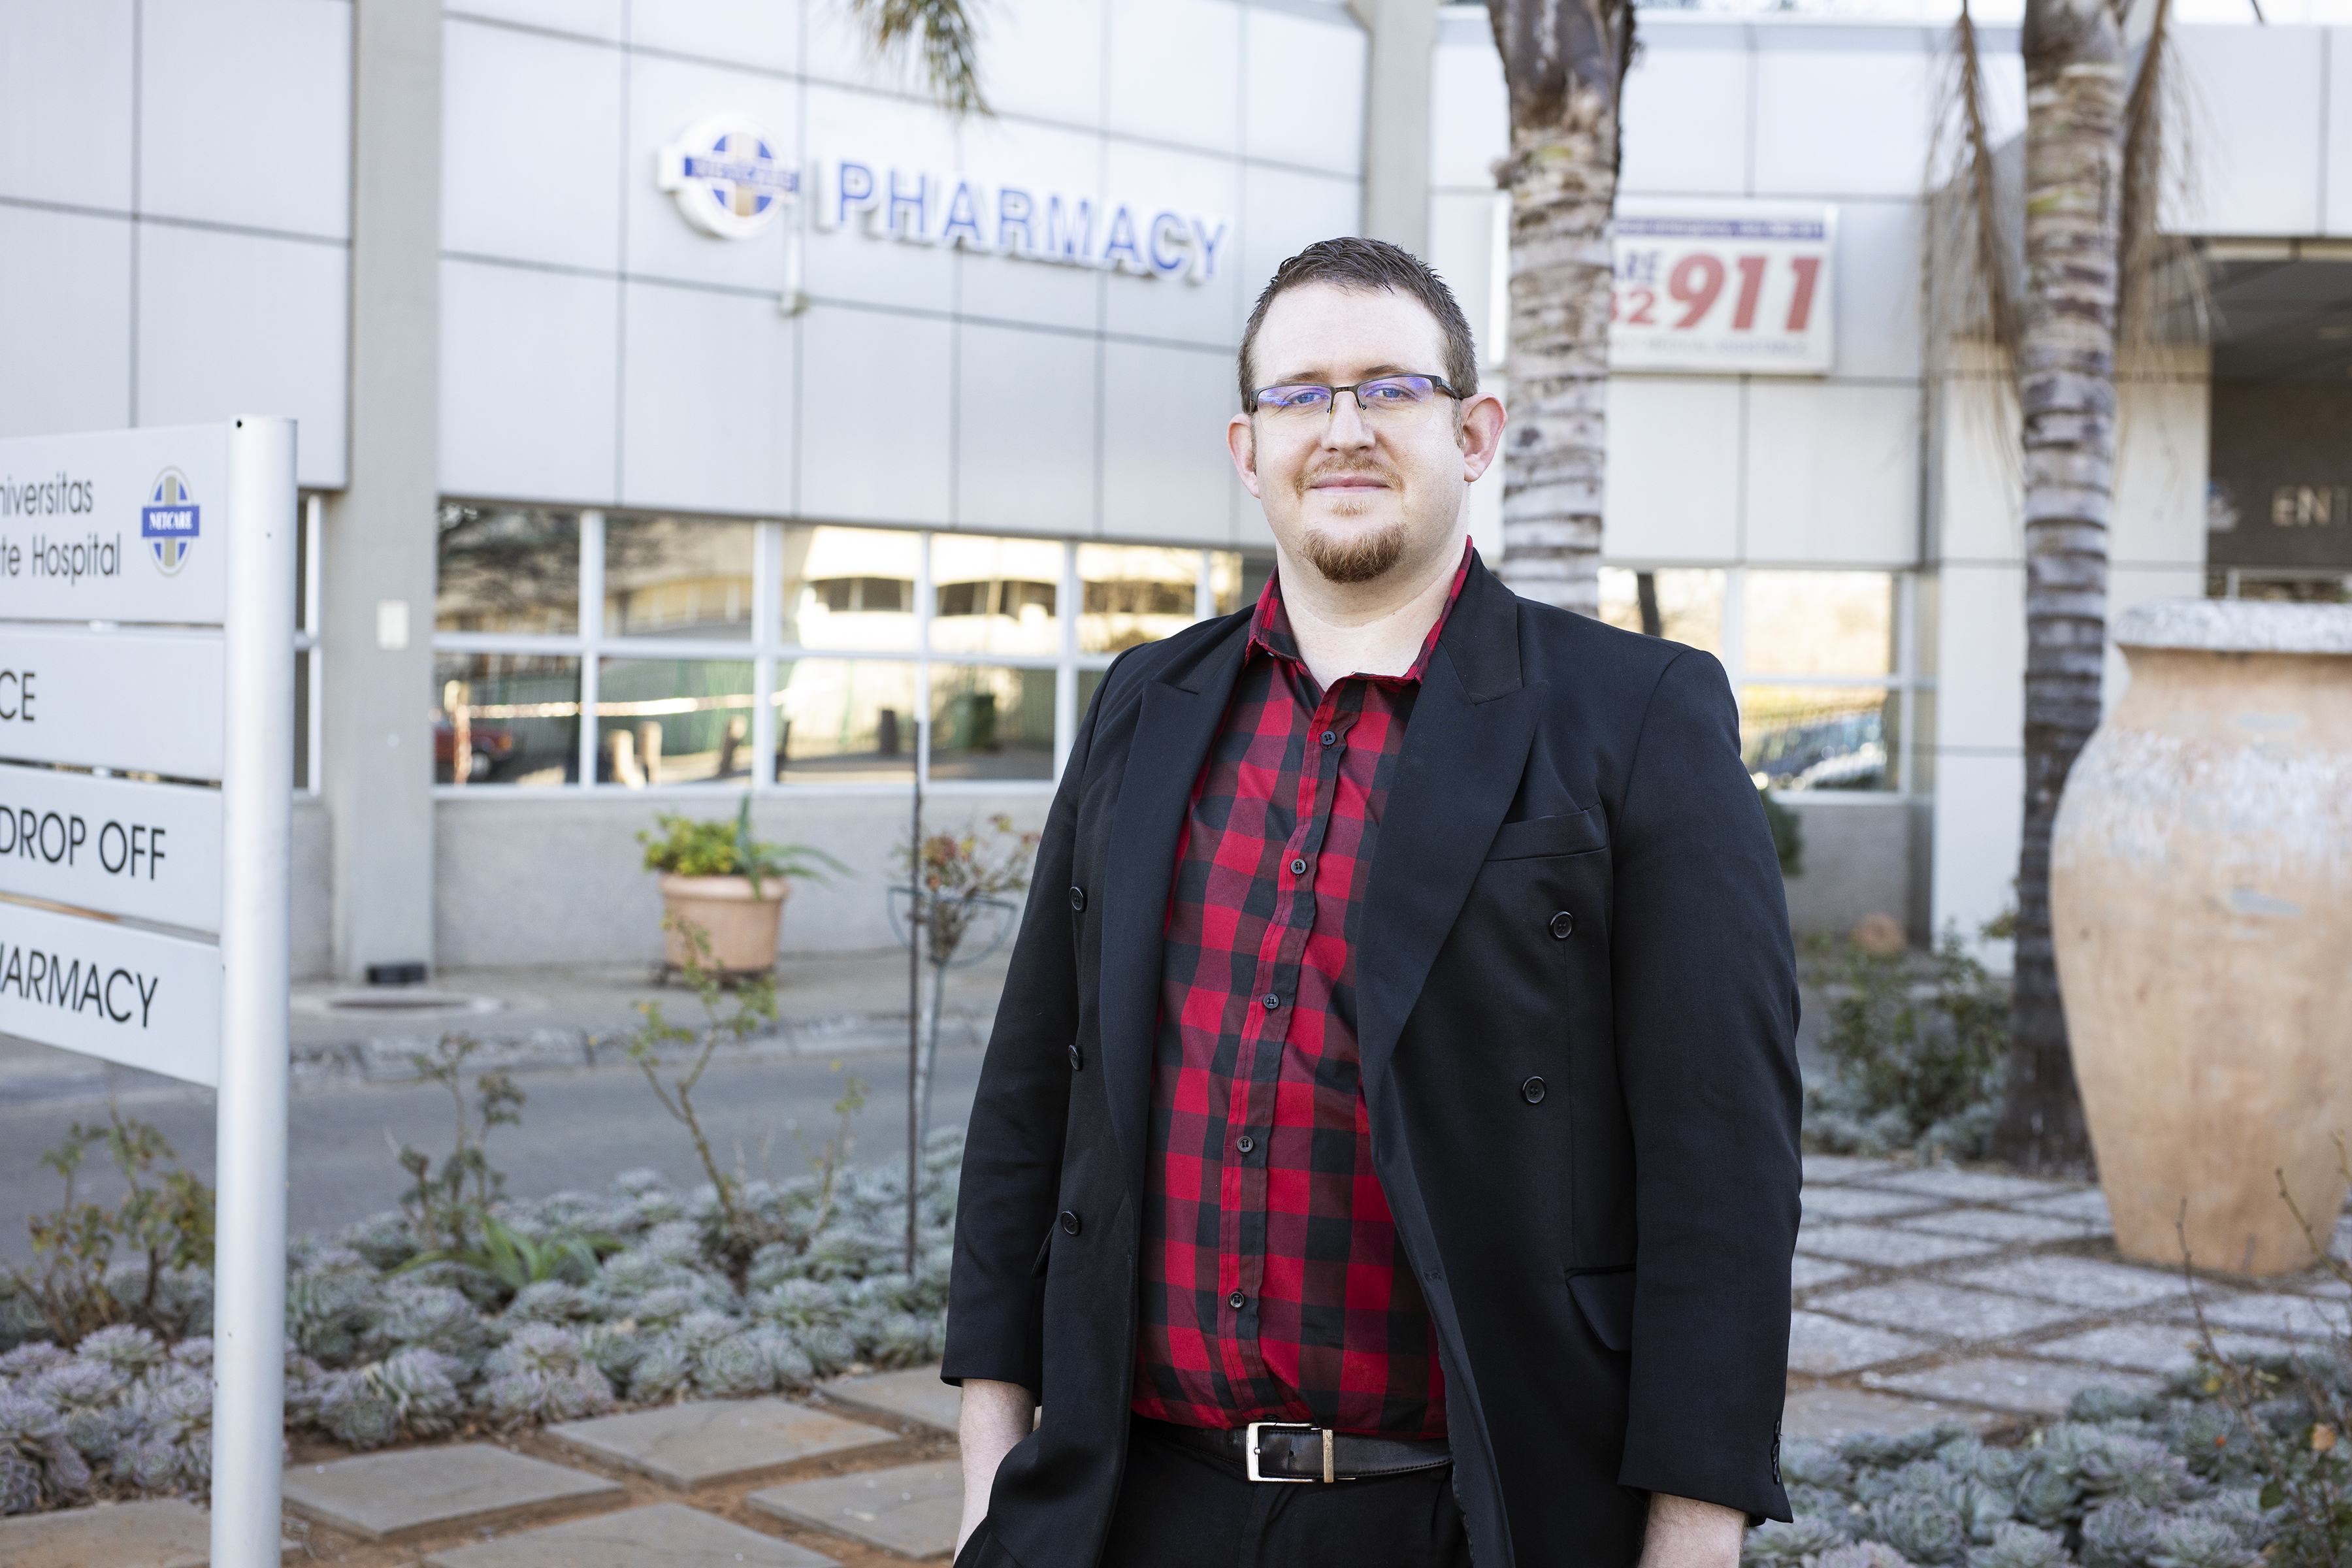 Herkulaas Combrink is the Interim Director of the UFS Initiatives for Digital Futures and PhD candidate in Computer Science at the University of Pretoria.